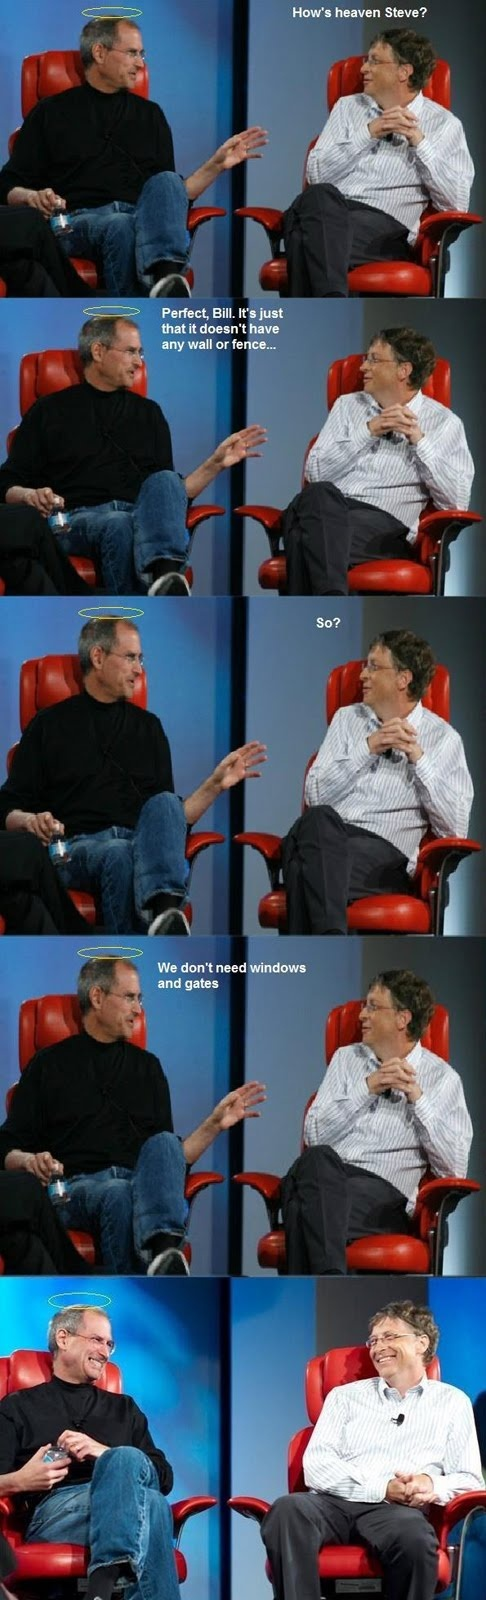 steve jobs and bill gates taking about heaven